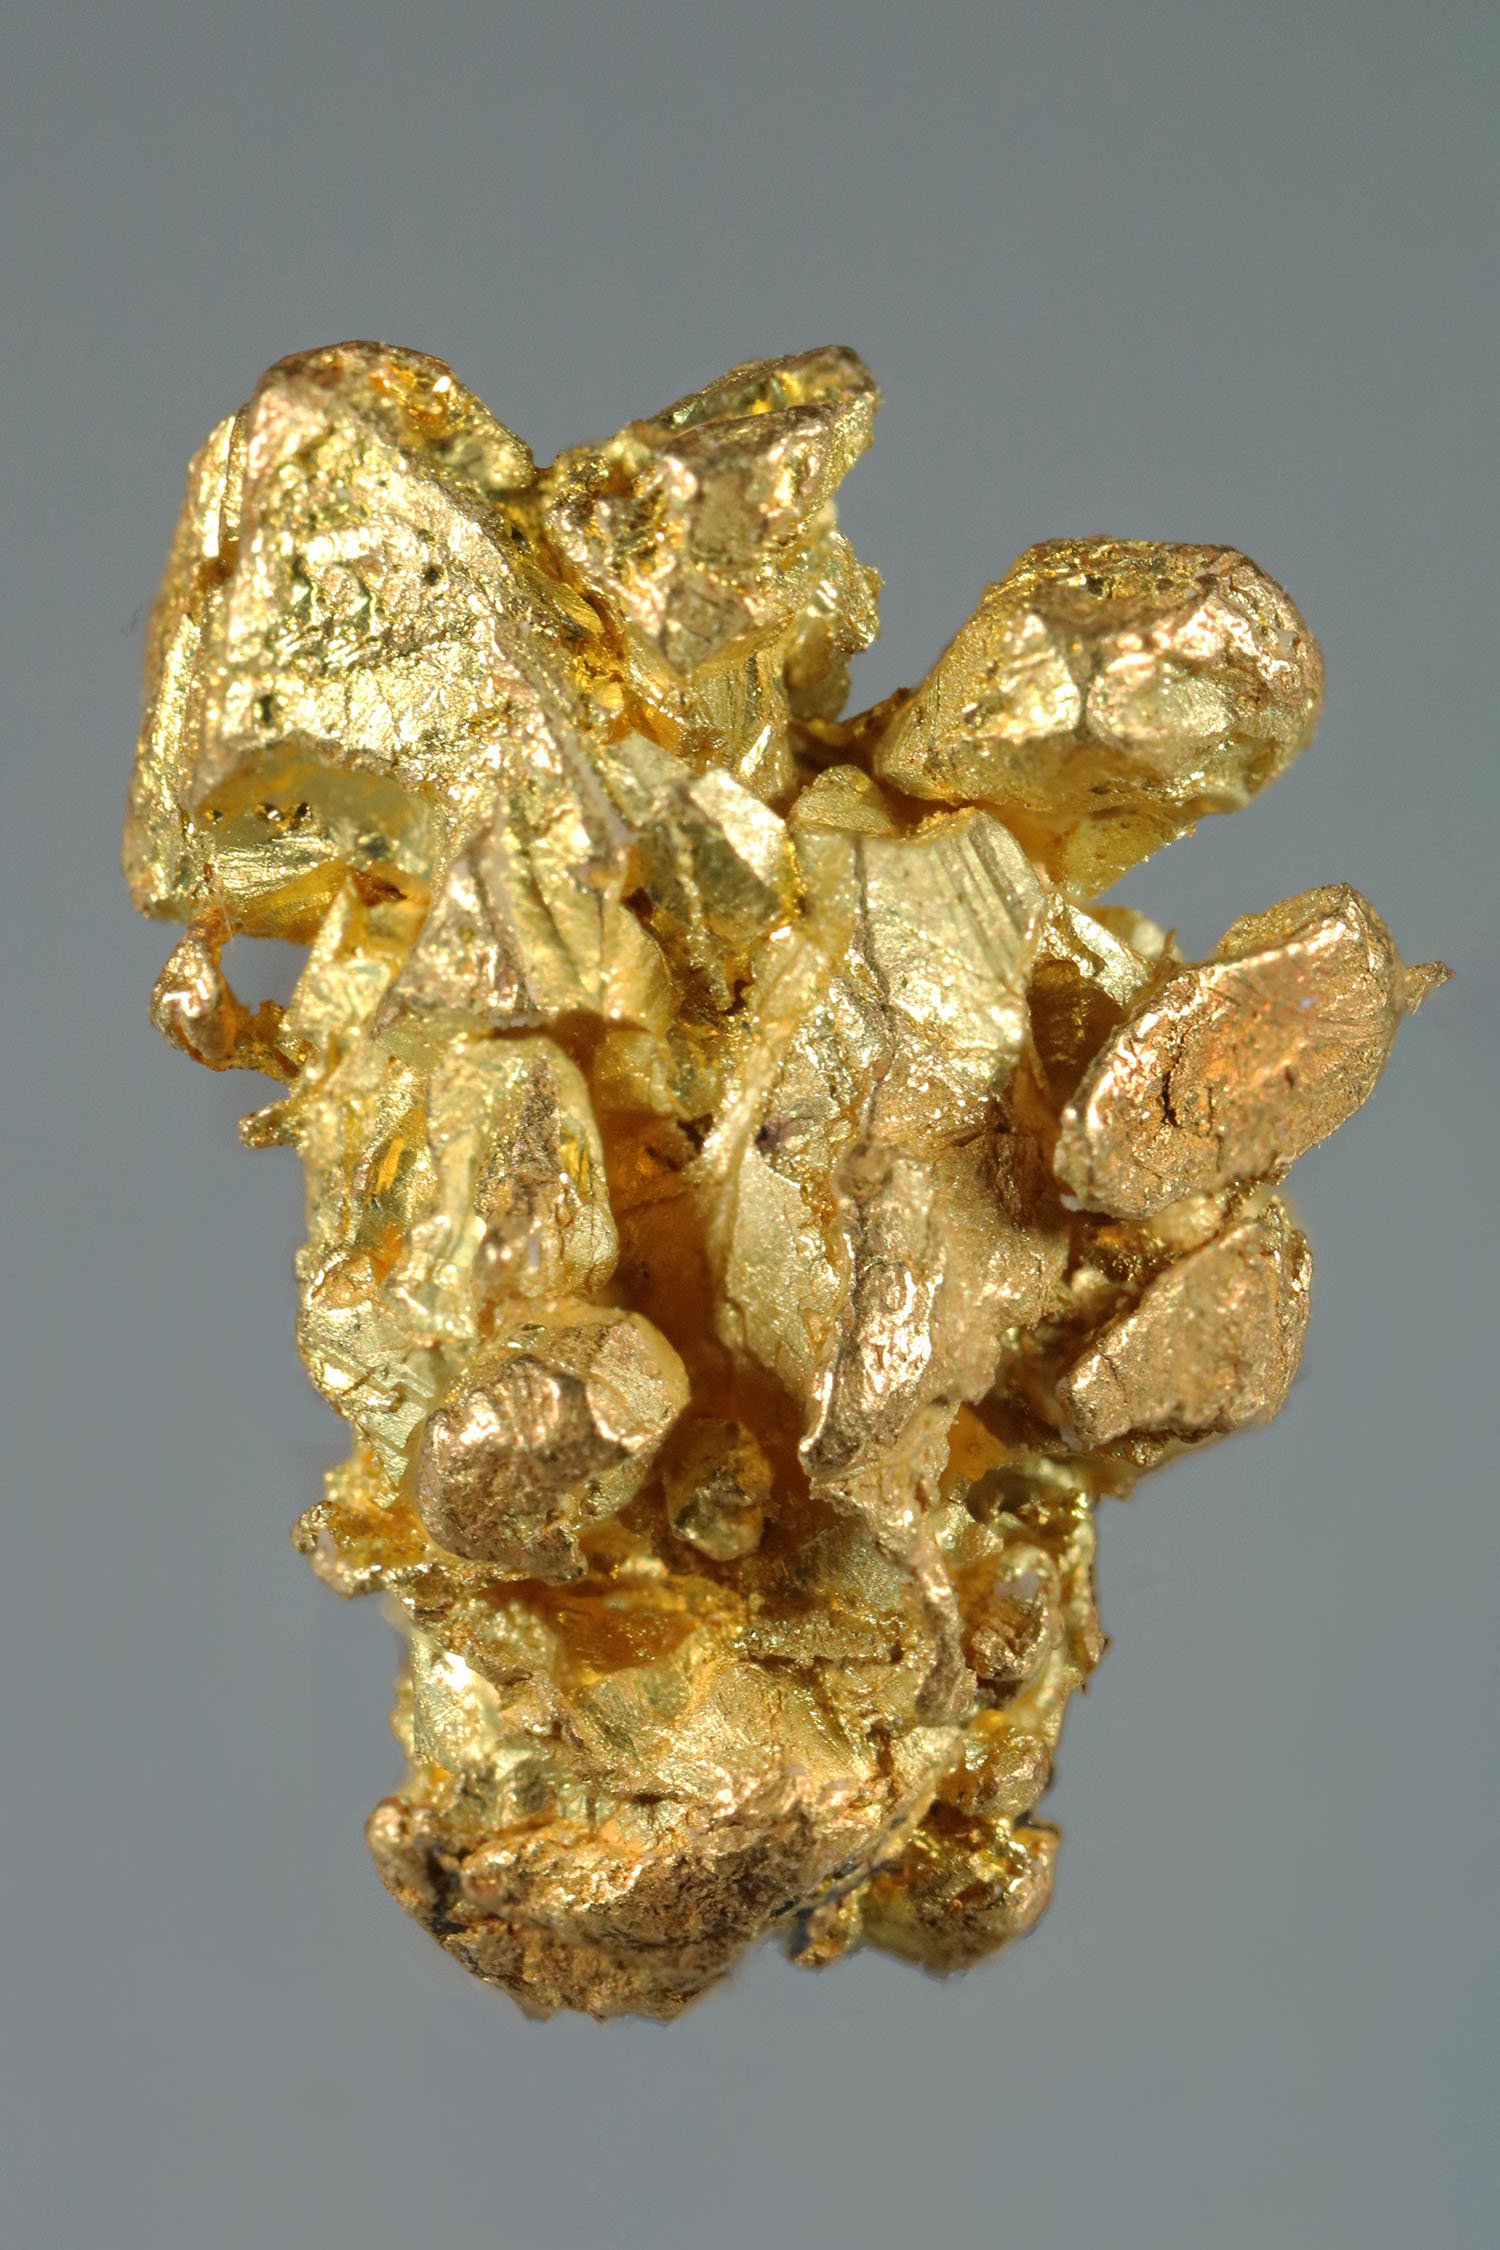 Well Defined Yukon Gold Crystal - Very Rare Find